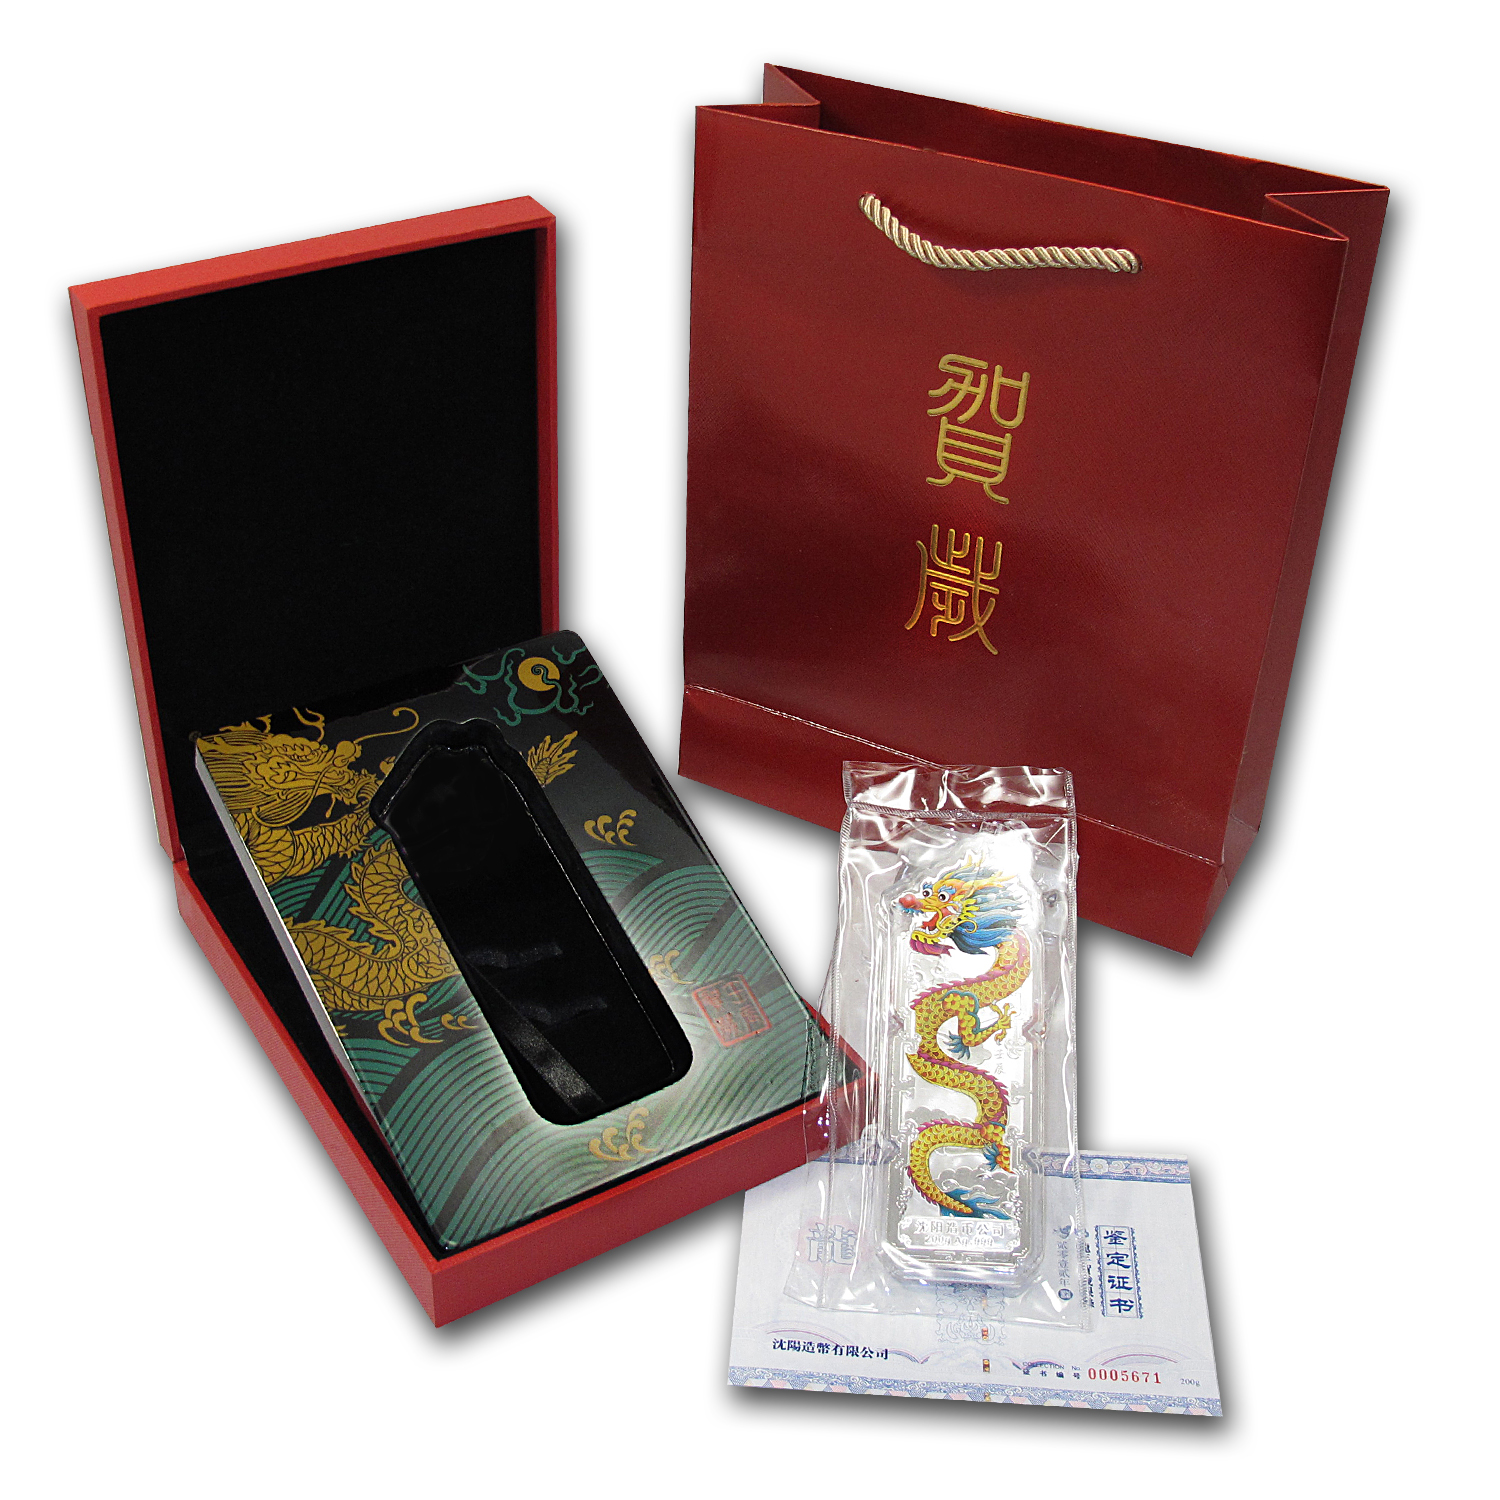 2012 China 200 gram Silver Year of the Dragon Bar (Dmgd capsule)